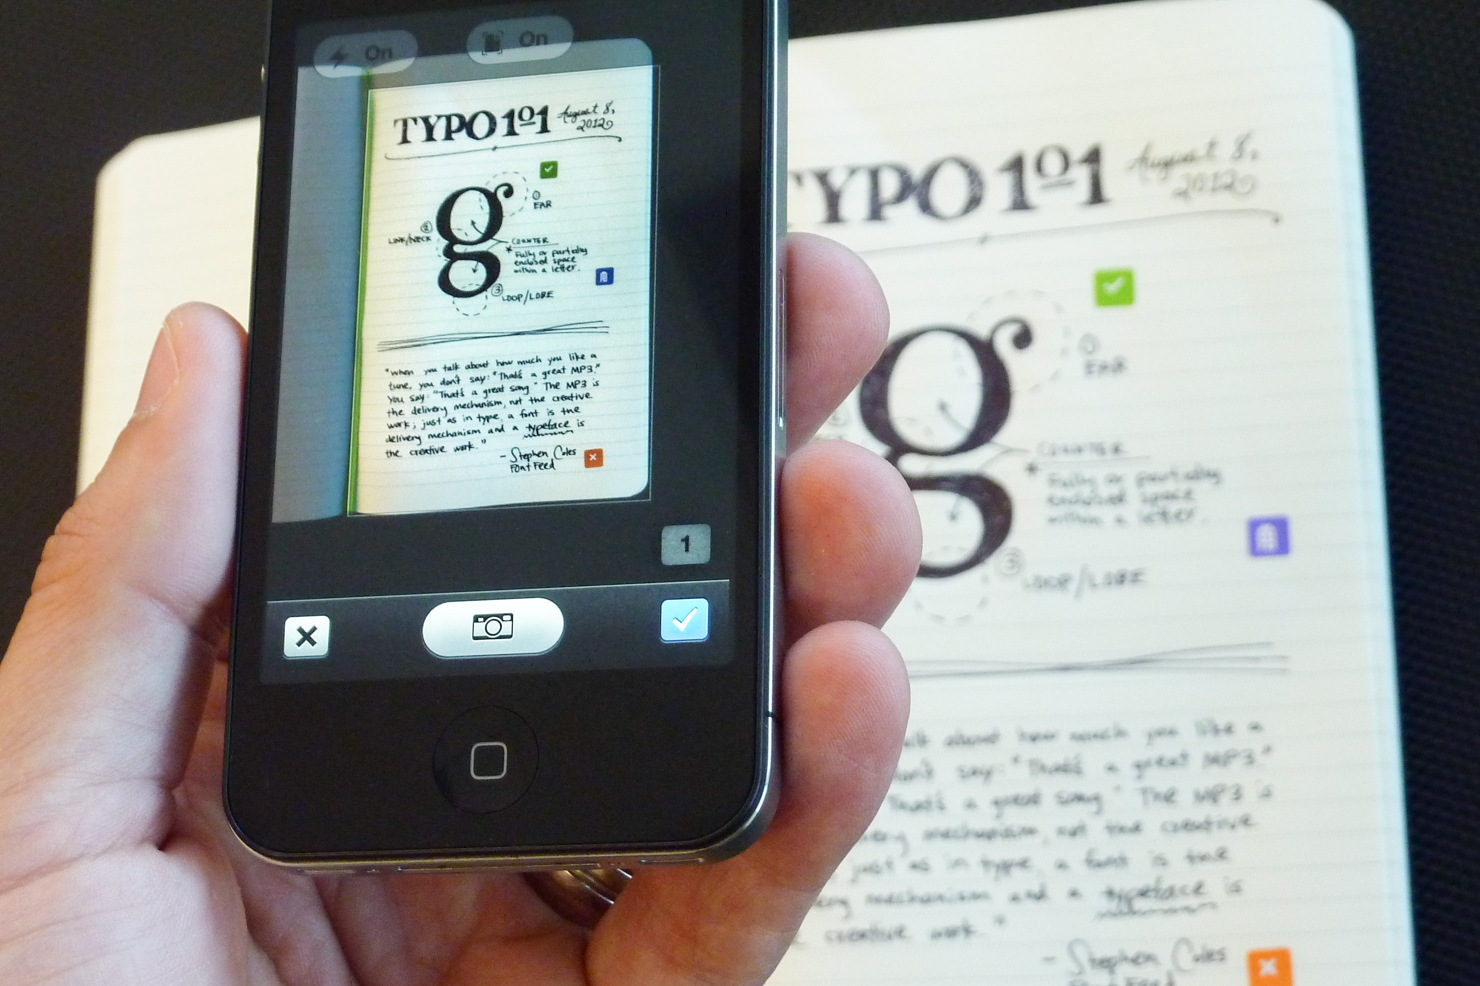 Xconomy: Moleskine Goes Digital: The Story Behind Evernote's